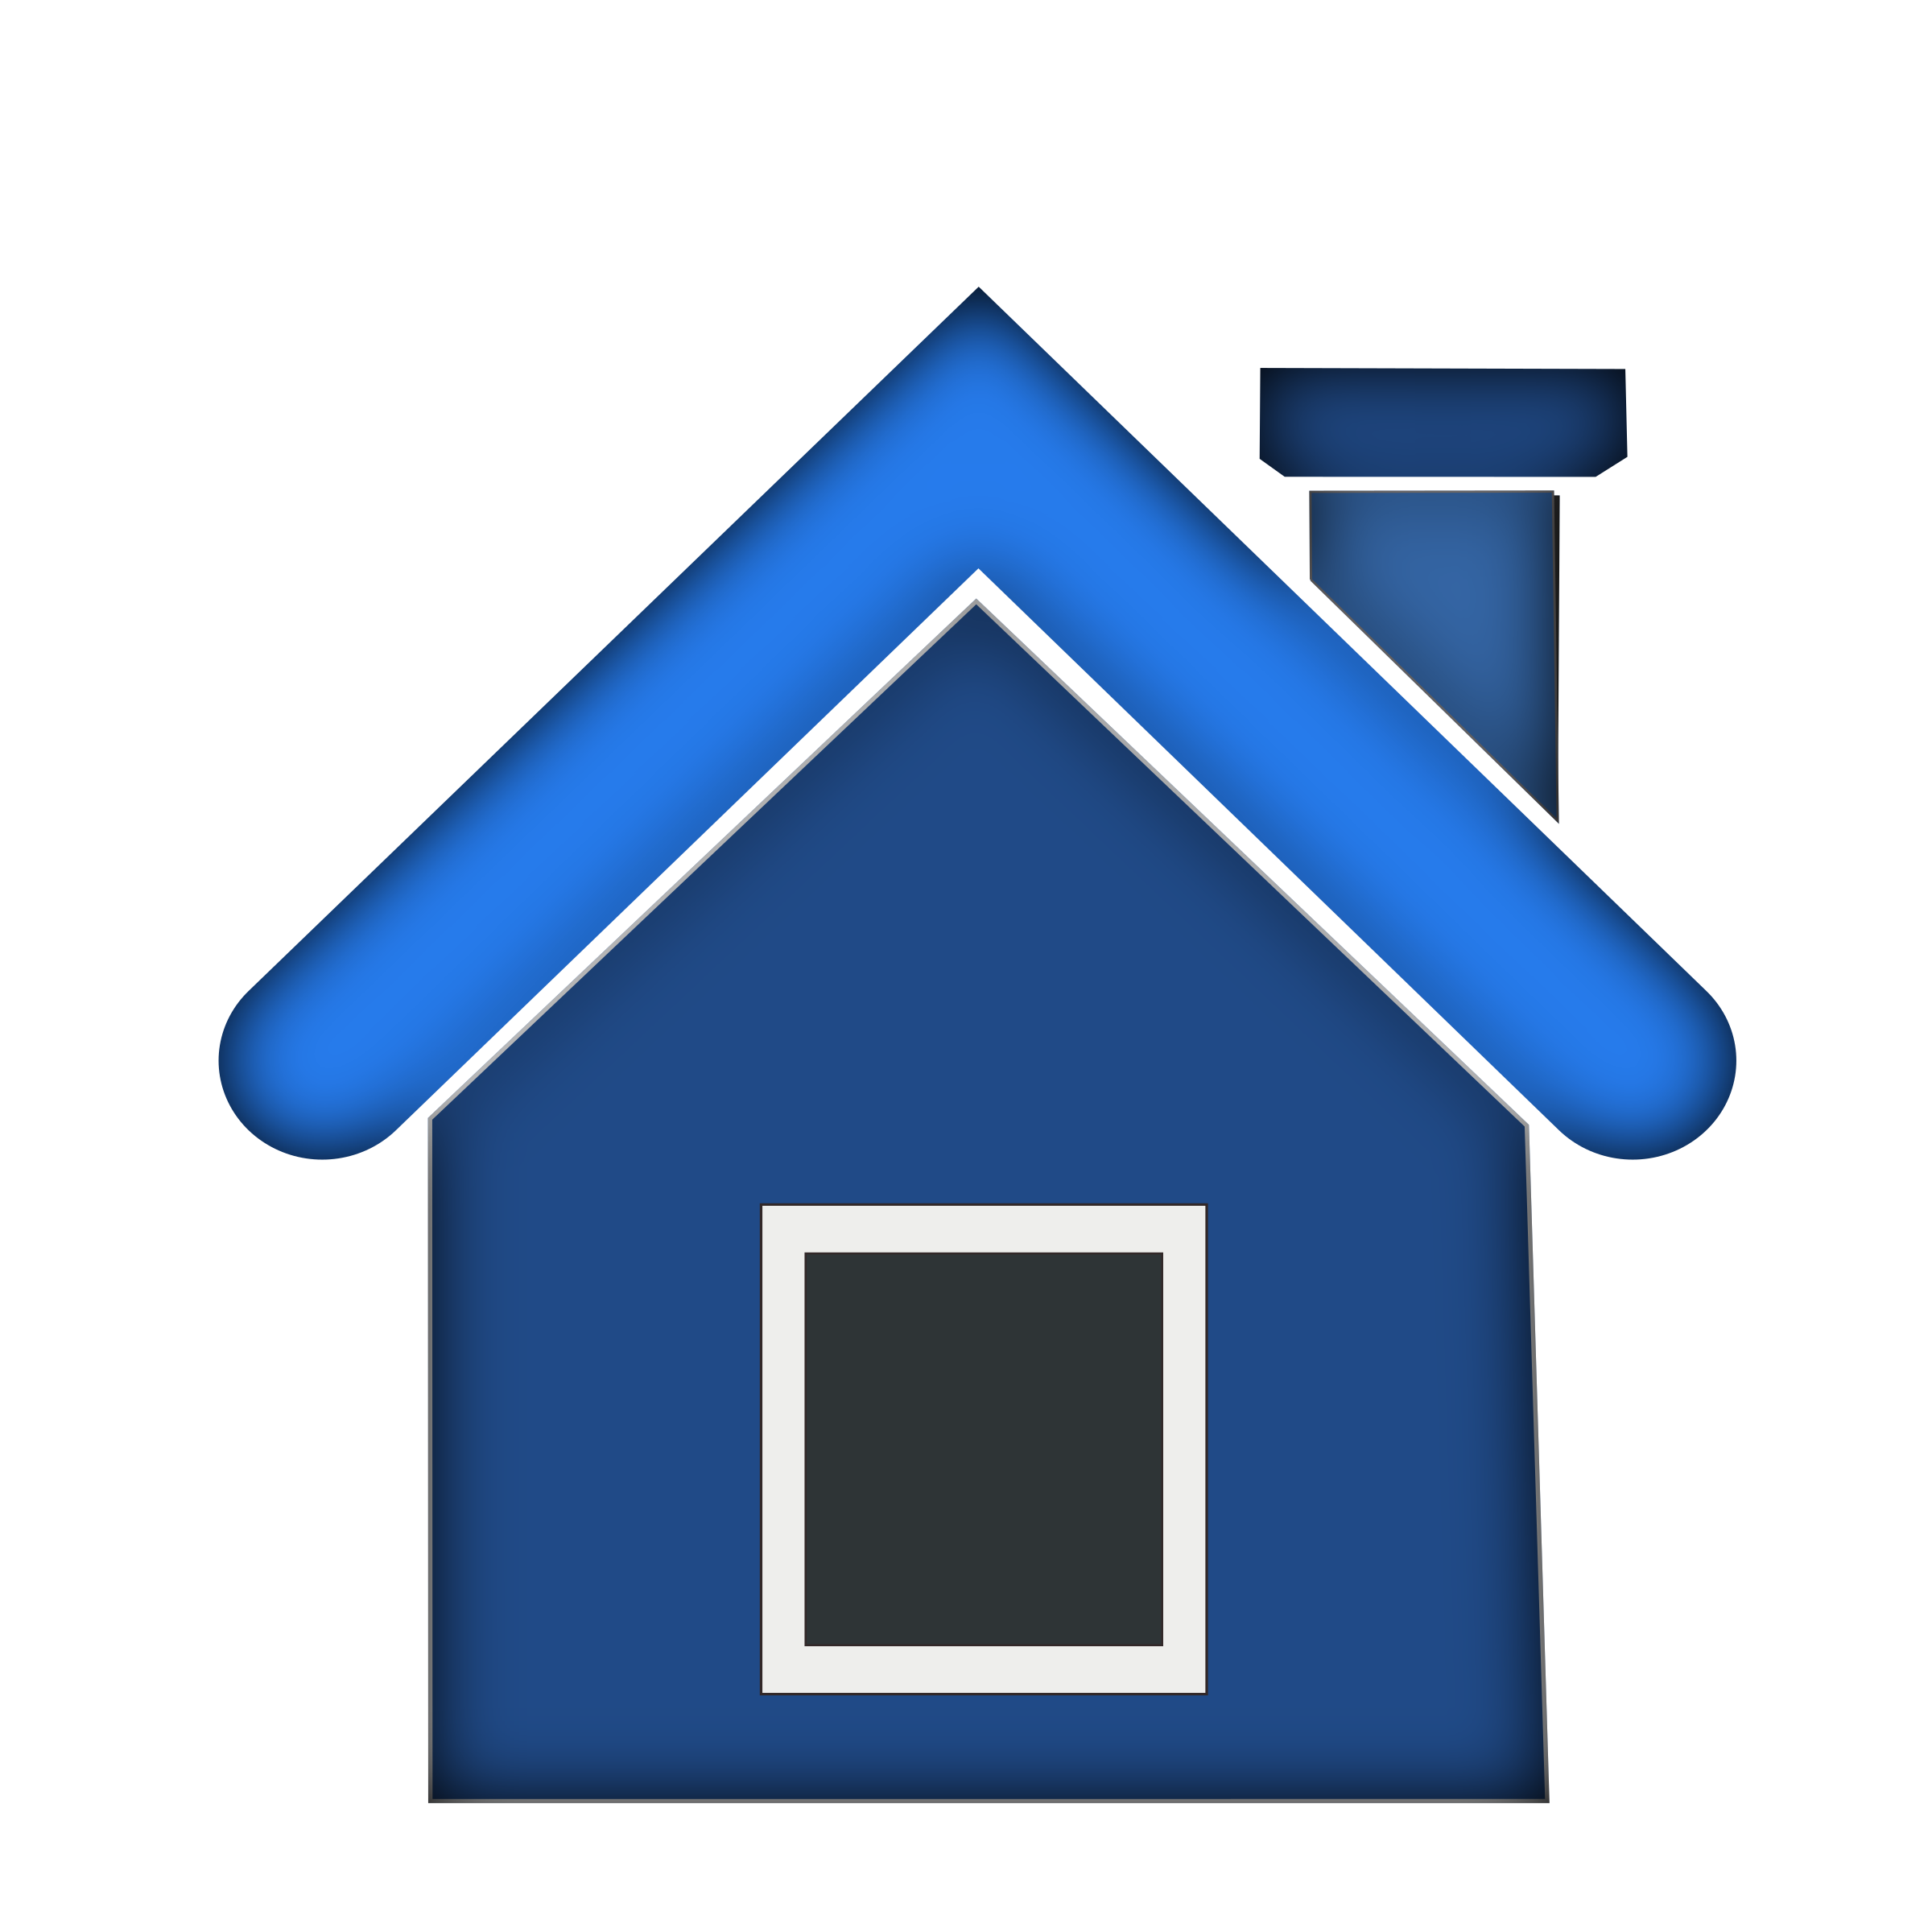 Clipart designs house. Home icon big image